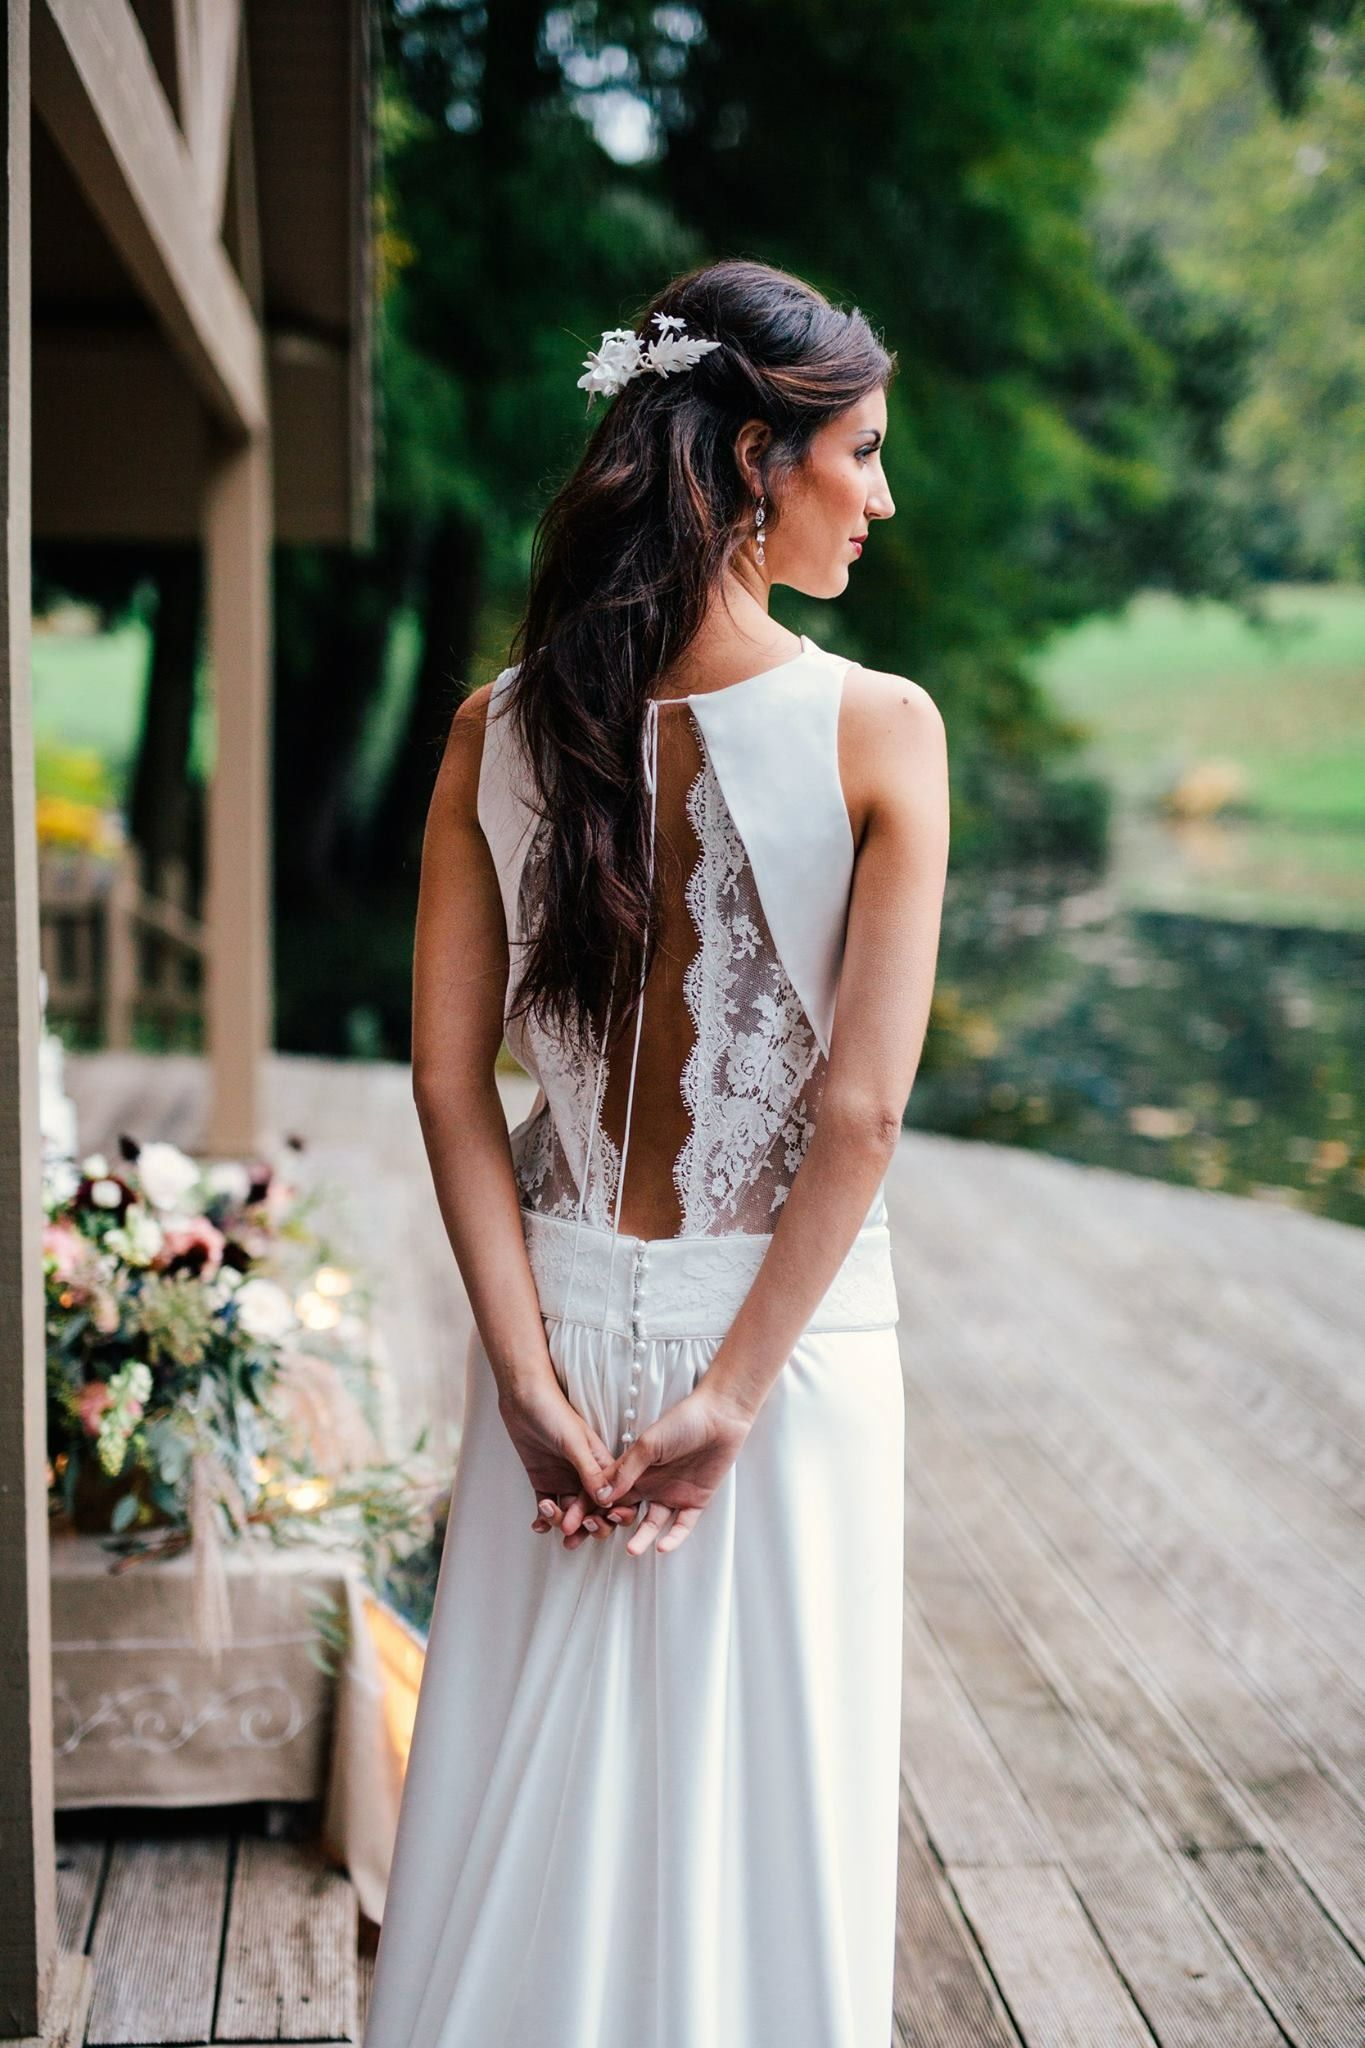 Pin by mop homesweethome on divers pinterest wedding dress